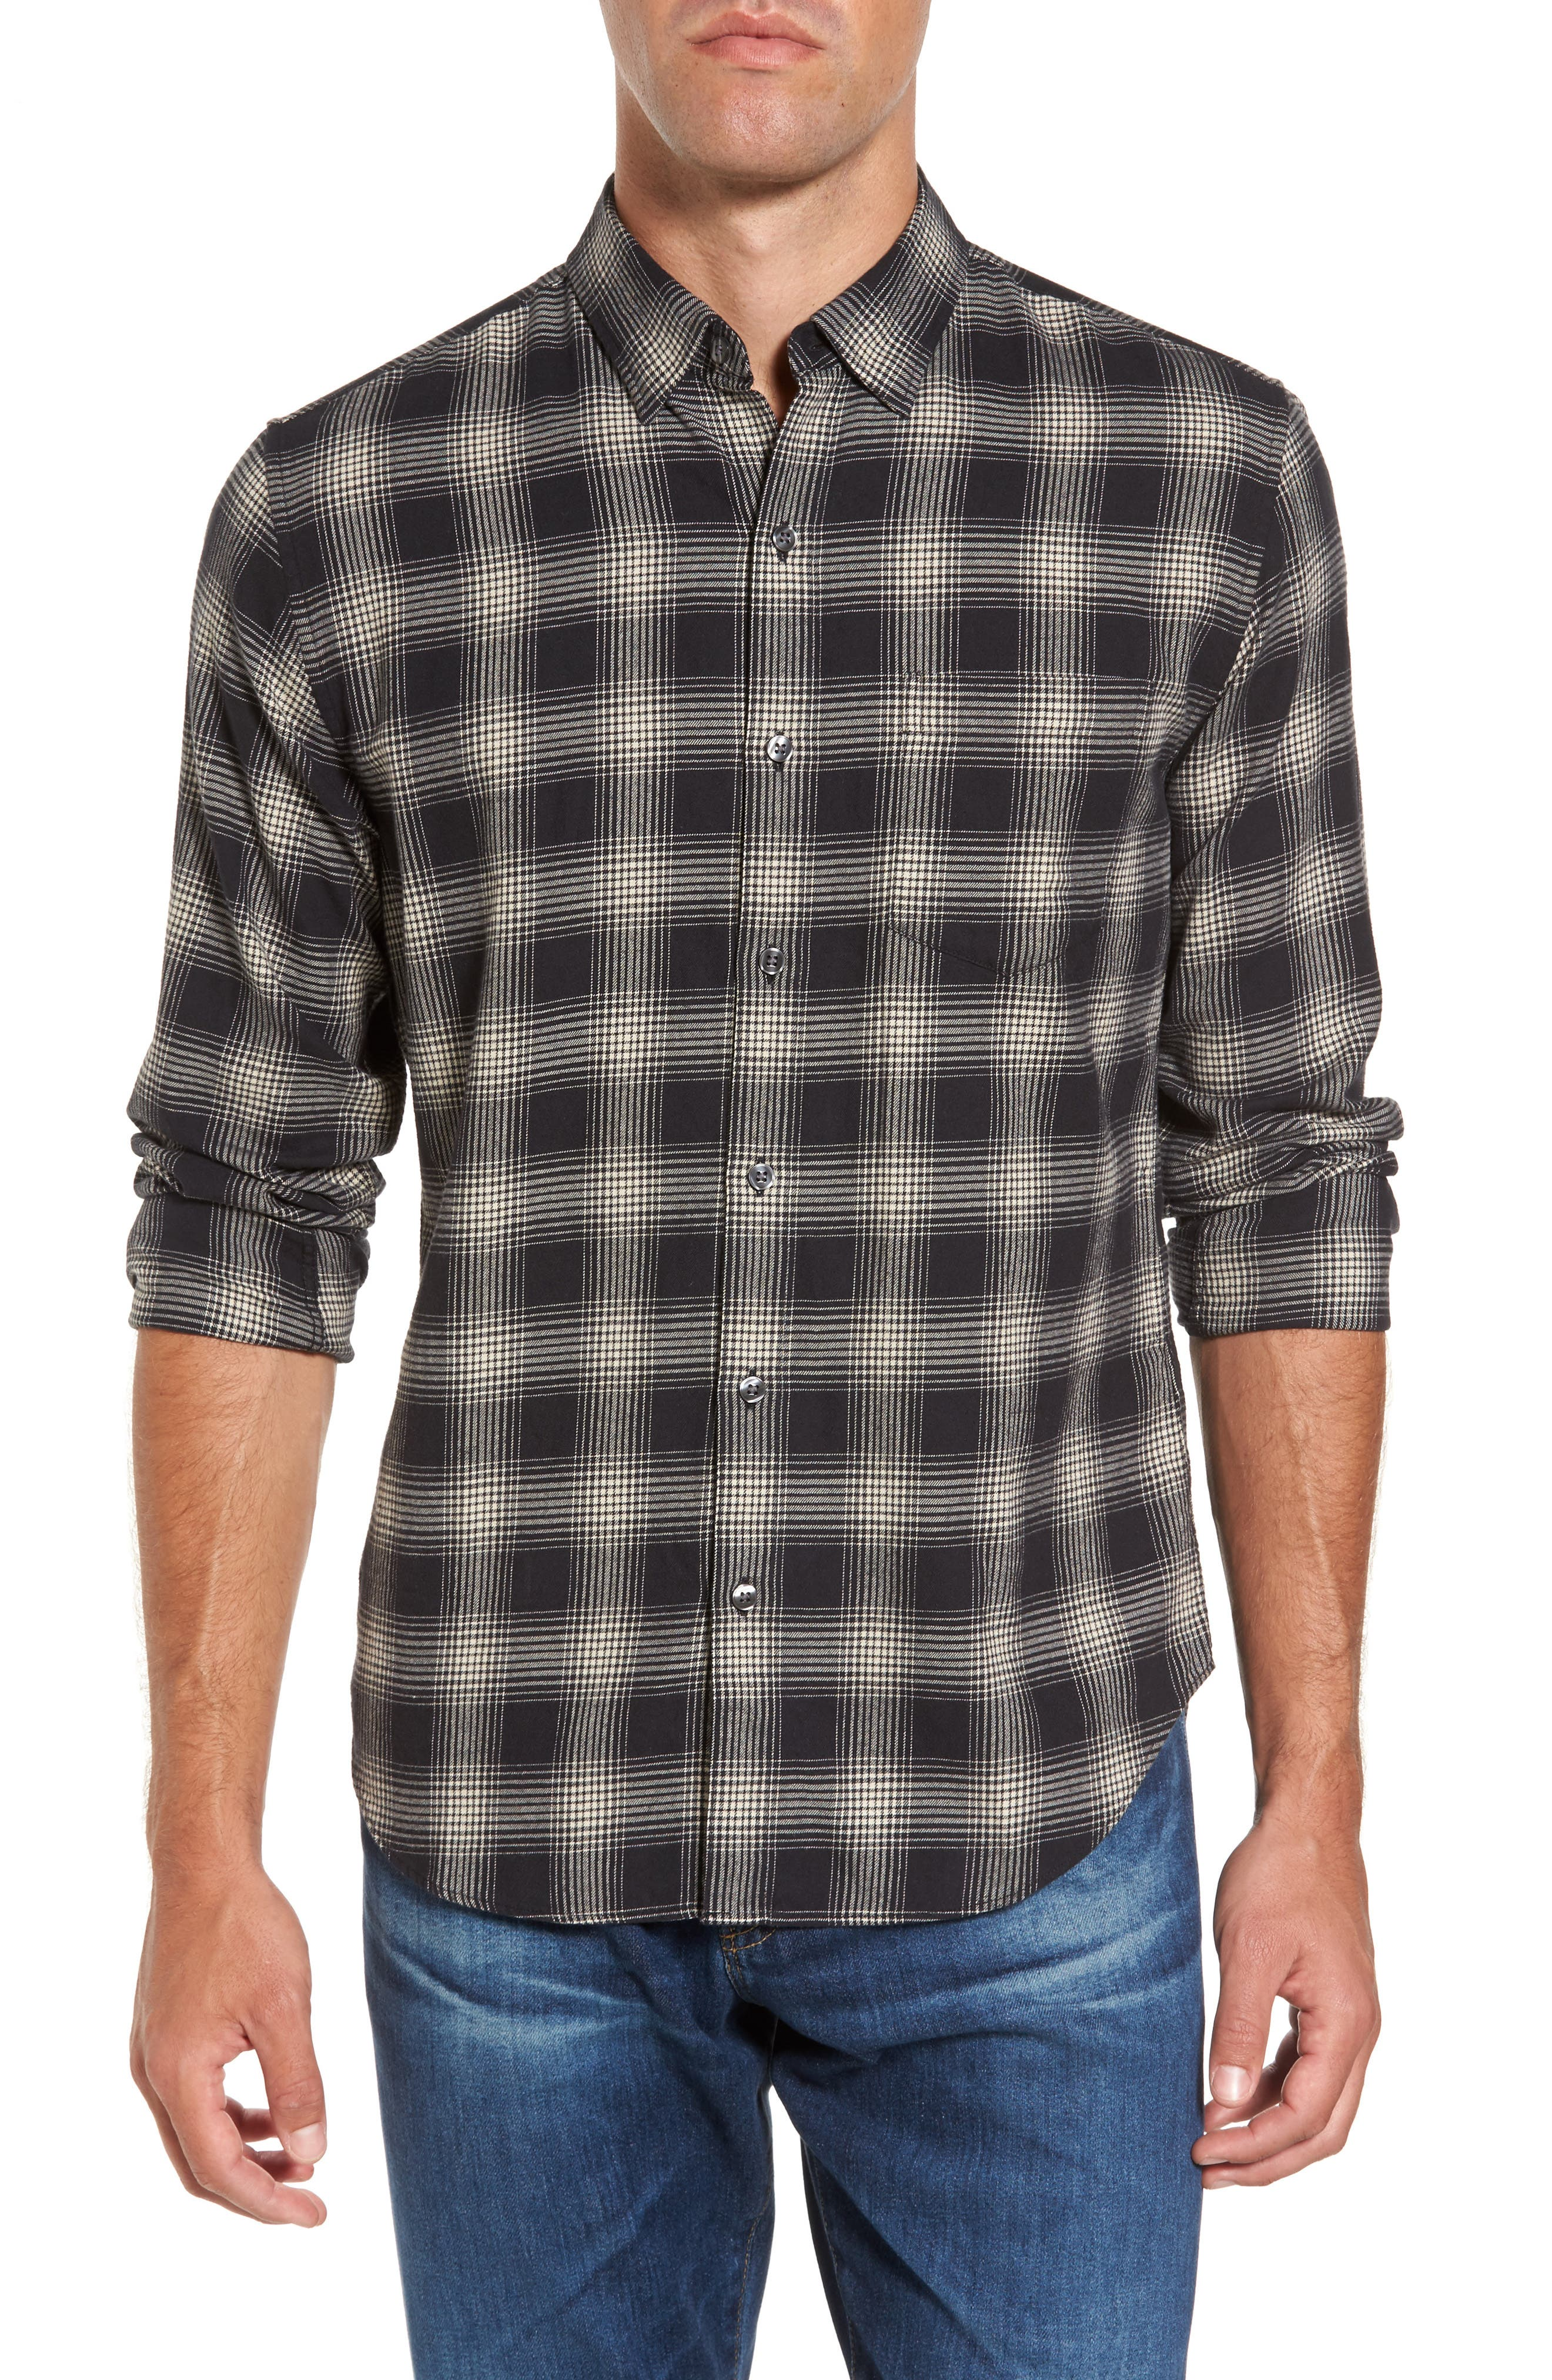 Alternate Image 1 Selected - Bonobos Slim Fit Plaid Brushed Twill Sport Shirt